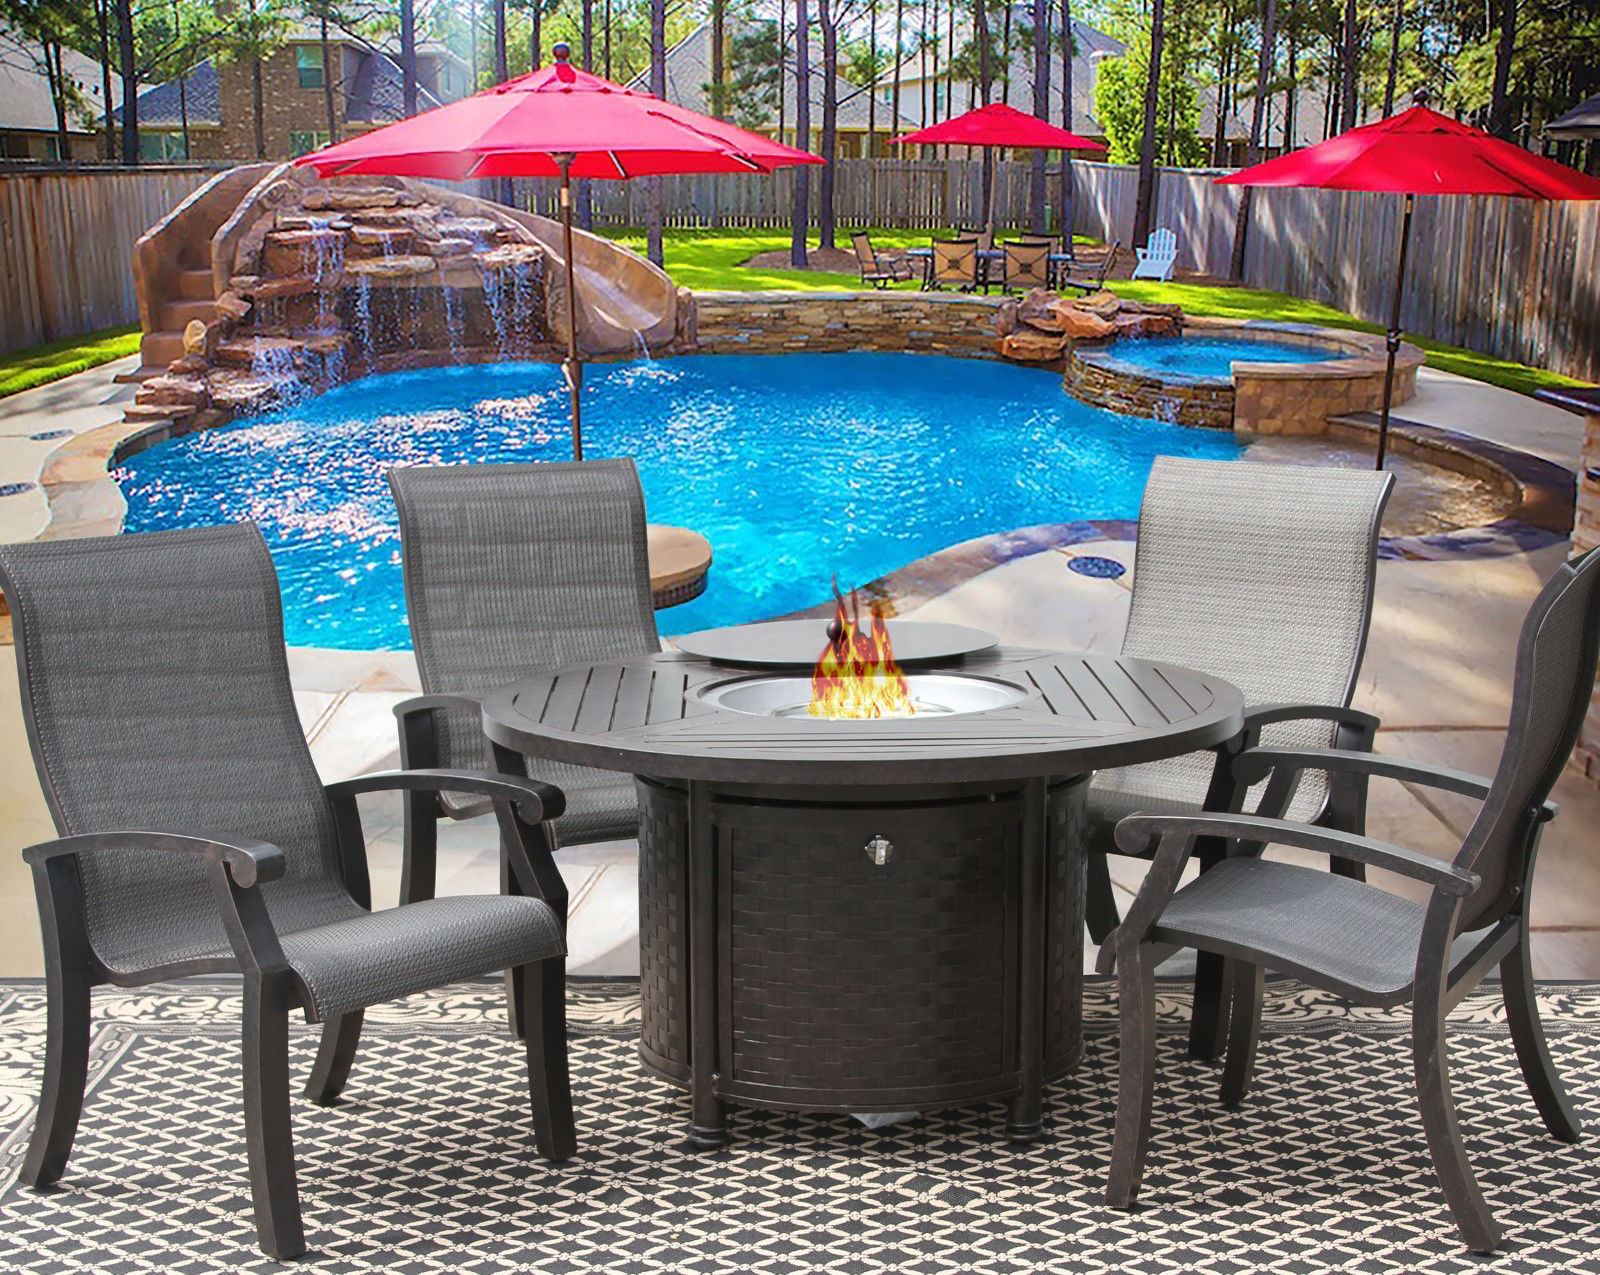 5 Piece FIRE TABLE BARBADOS SLING OUTDOOR PATIO FURNITURE DINING SET FIRE PIT